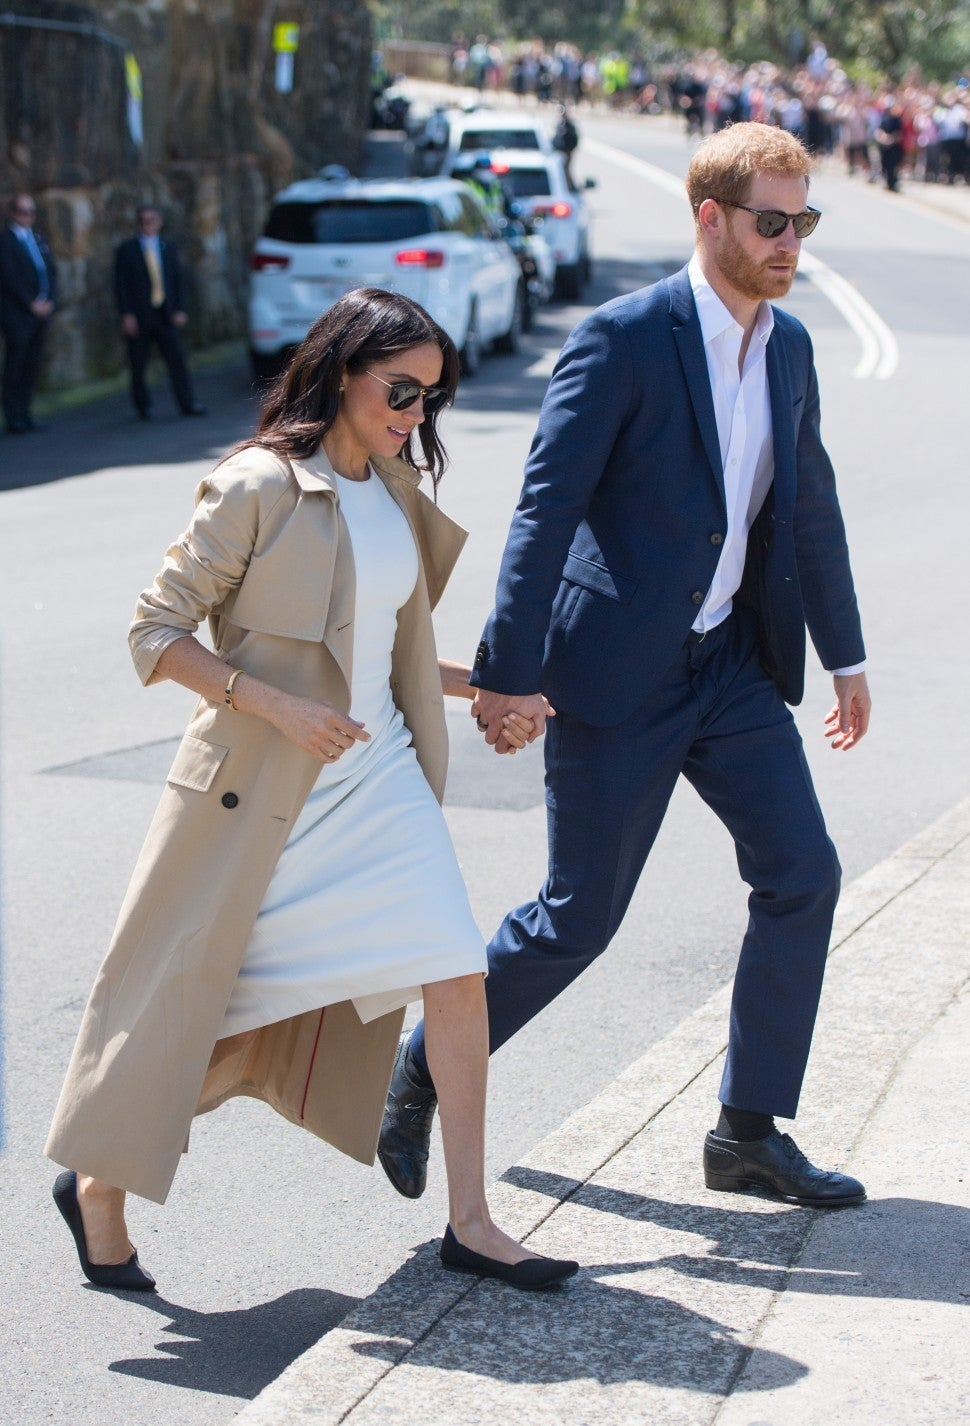 Meghan Markle in Rothy's flats with Prince Harry